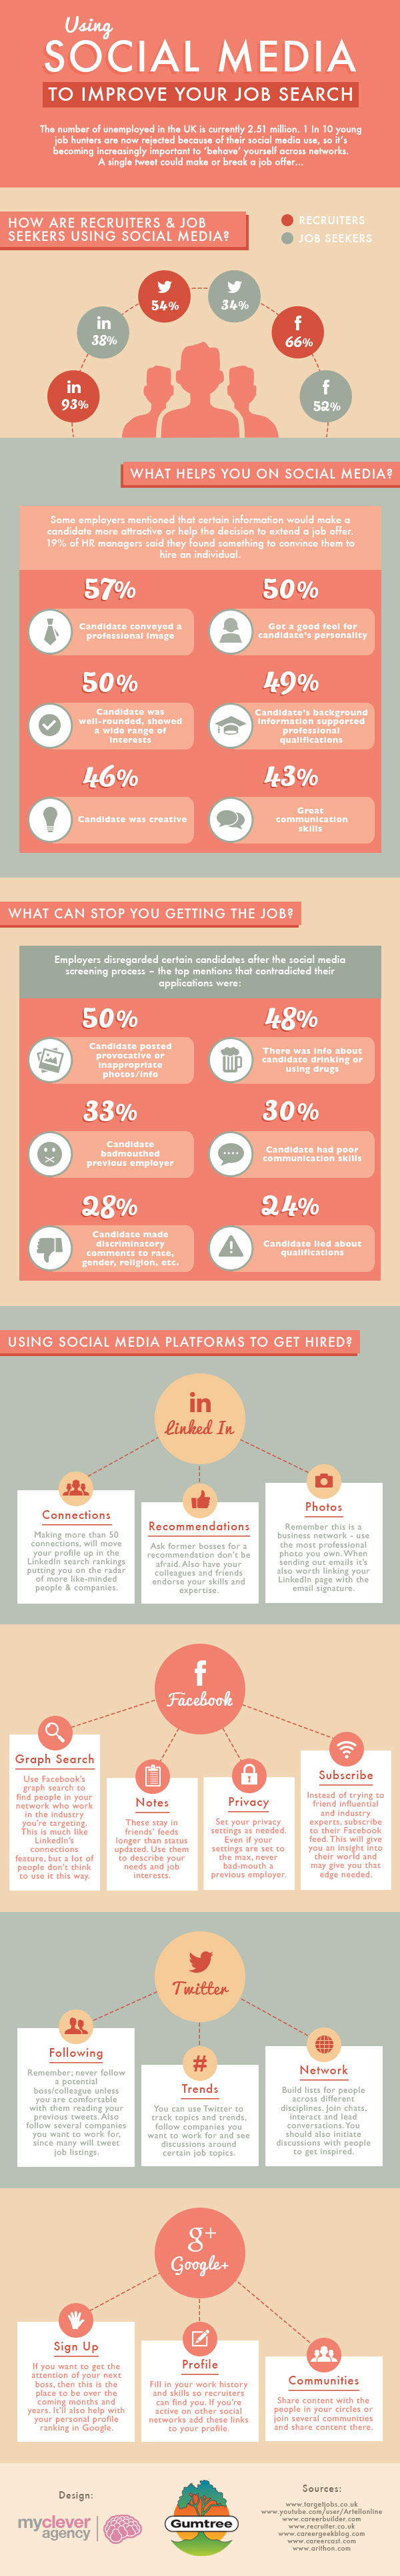 Using Social Media To Improve Your Job Search - Image 1